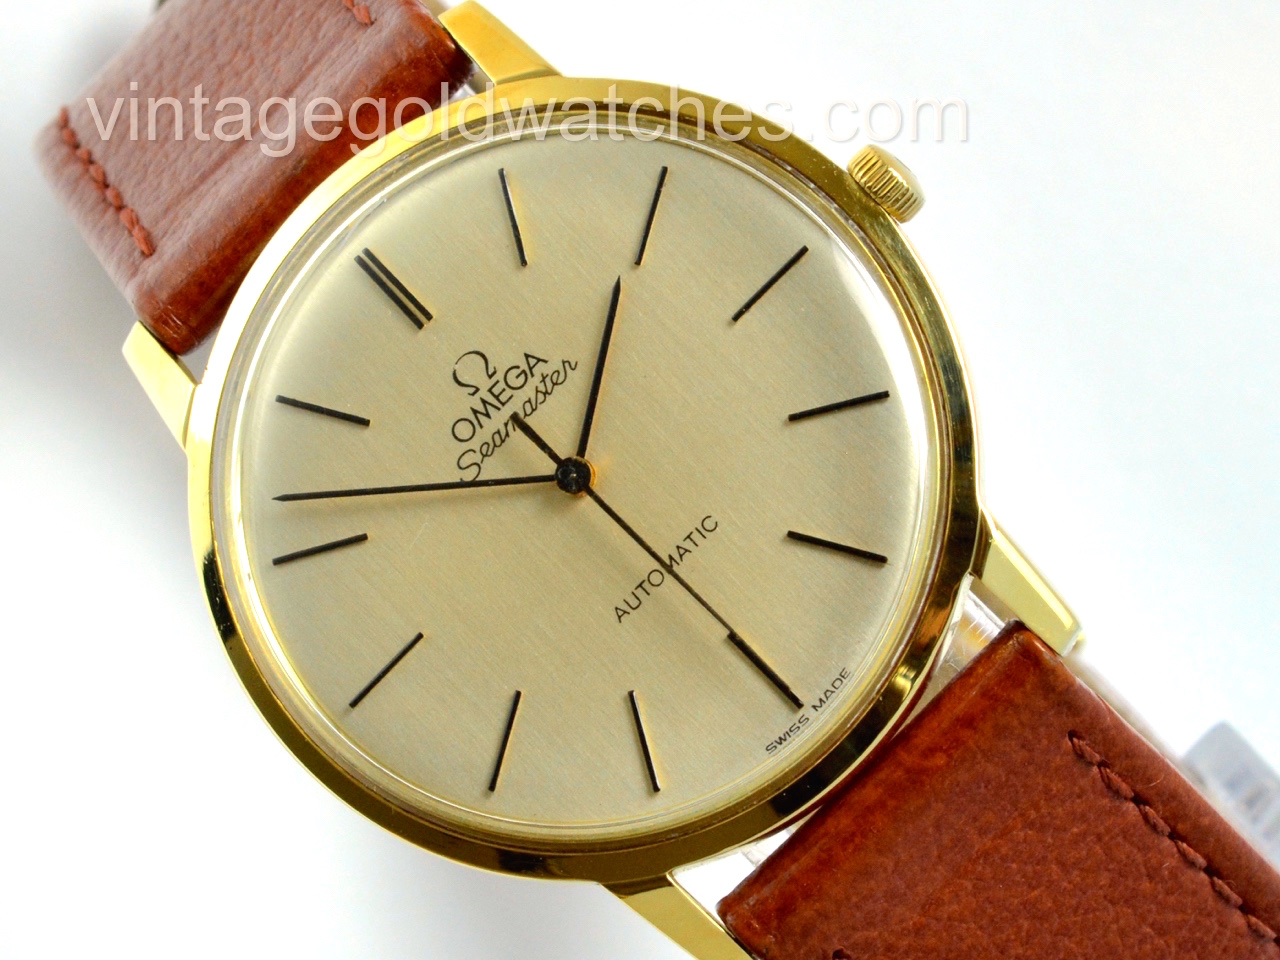 Of watches value old omega How Much